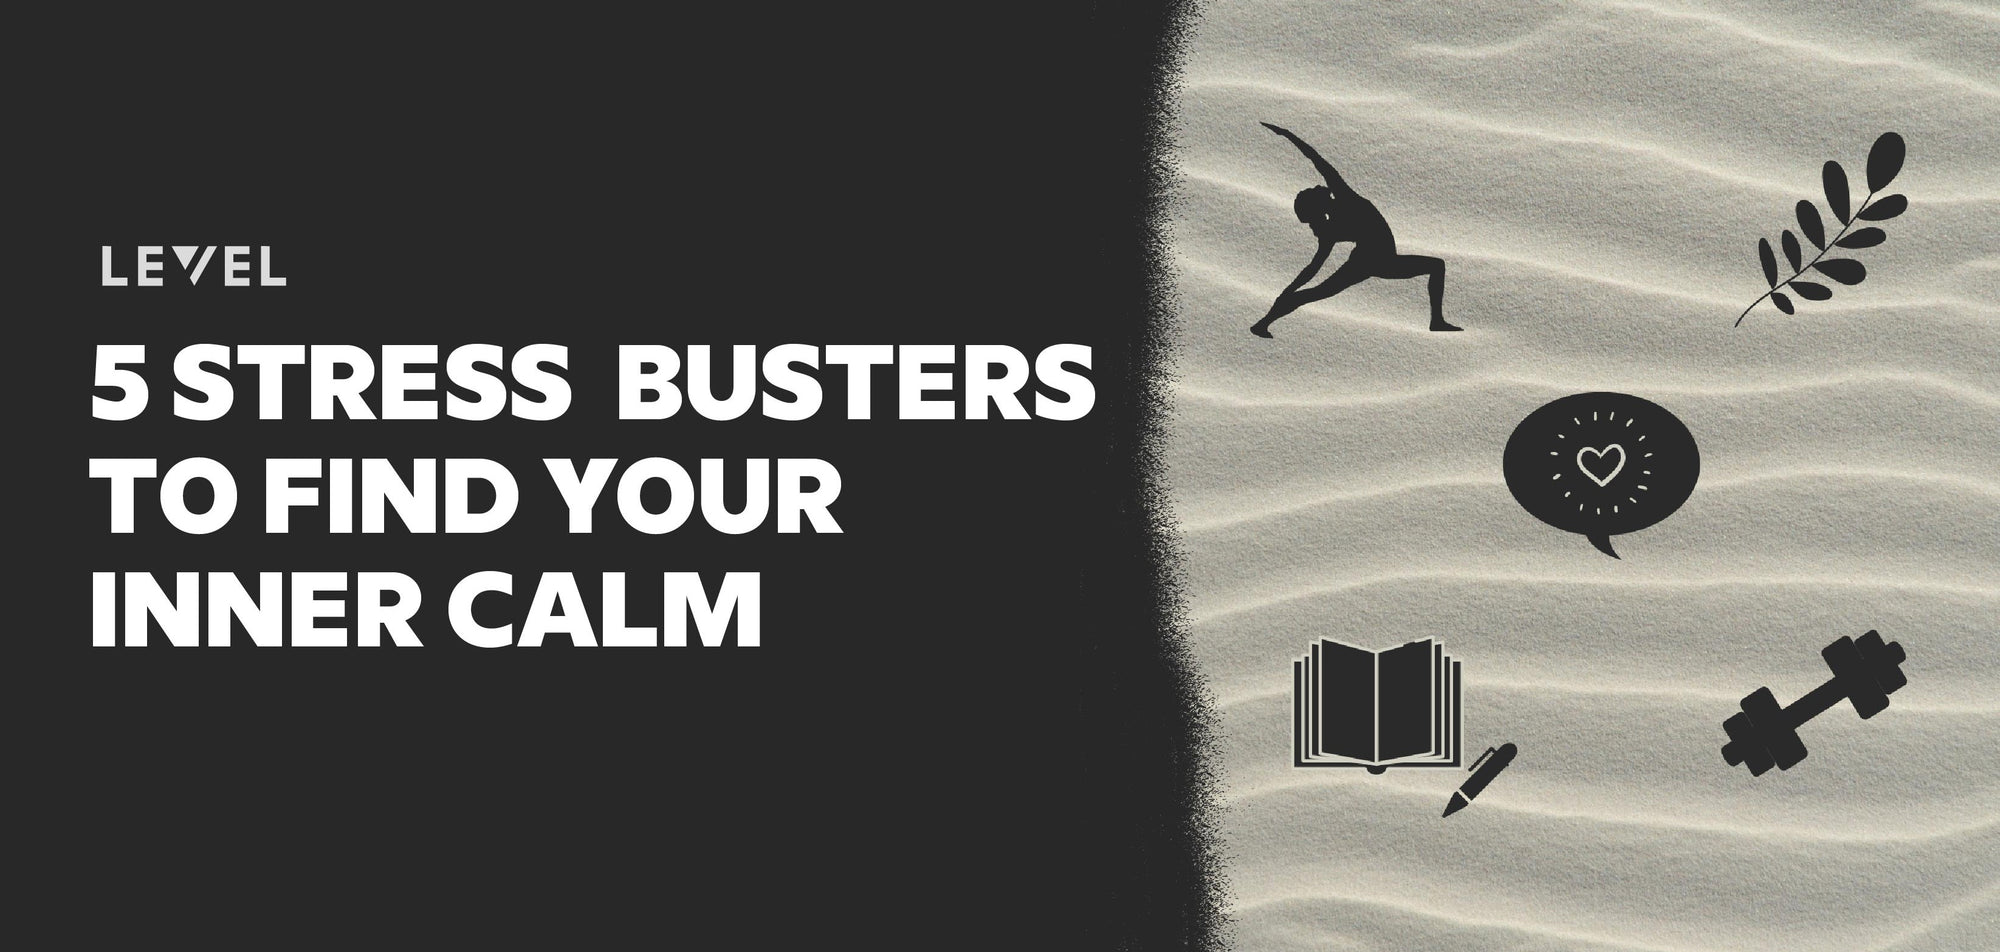 5 Stress Busters To Find Your Inner Calm